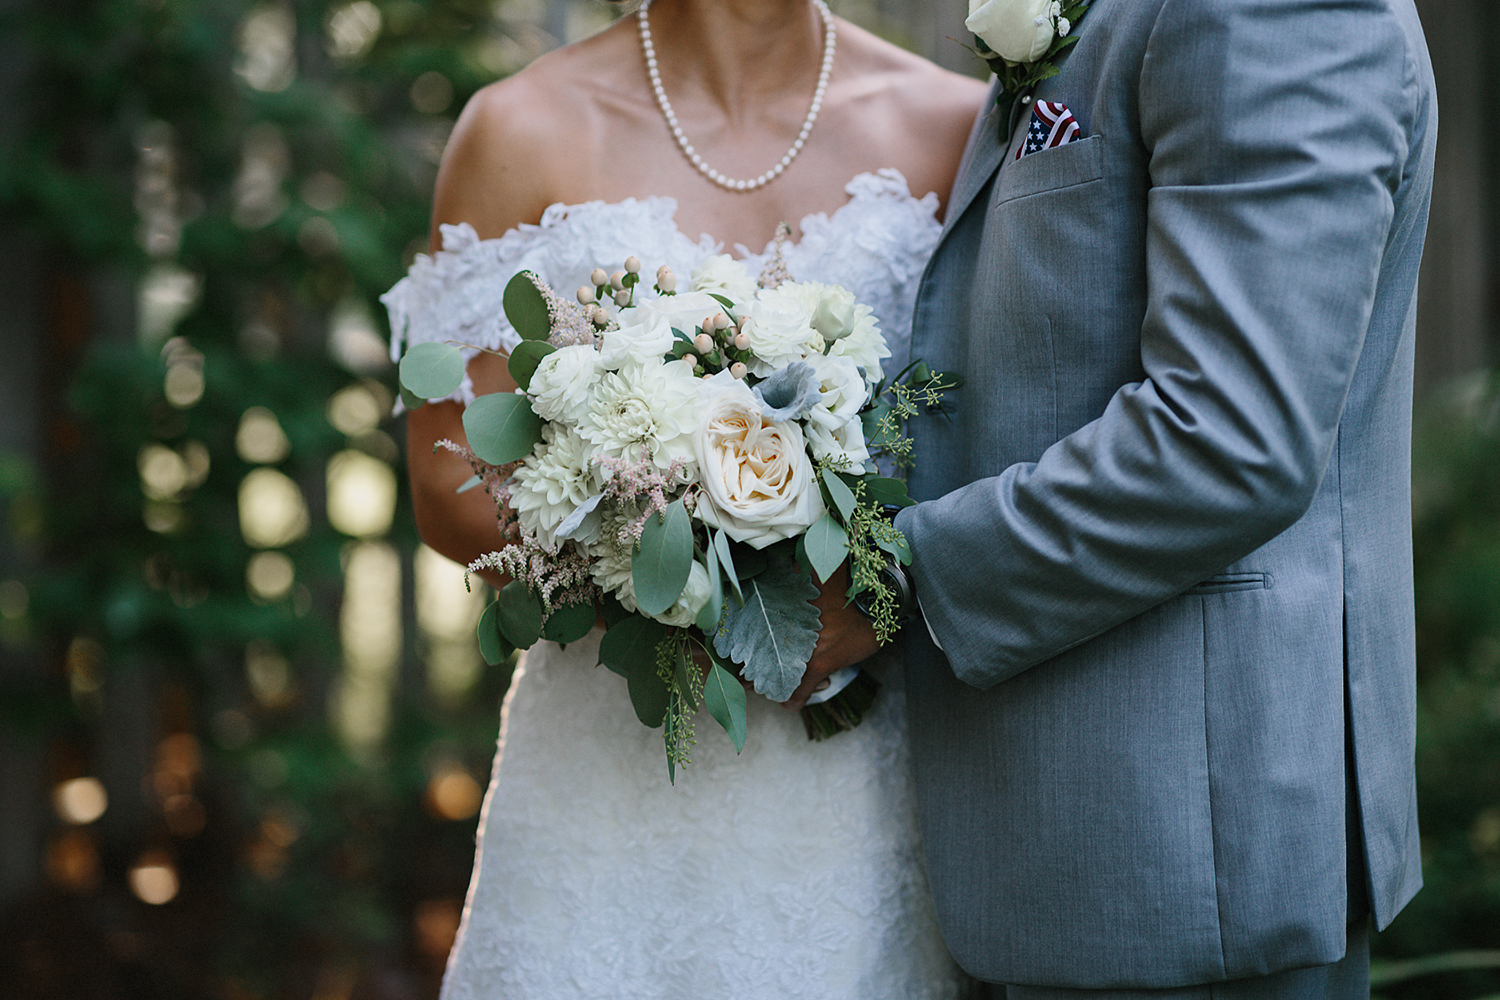 muskoka-wedding-photographer-hidden-valley-resort-film-photography-junebug-weddings-inspiration-bride-and-groom-couples-portraits-romantic-artistic-details-of-earthly-green-bouquet.jpg